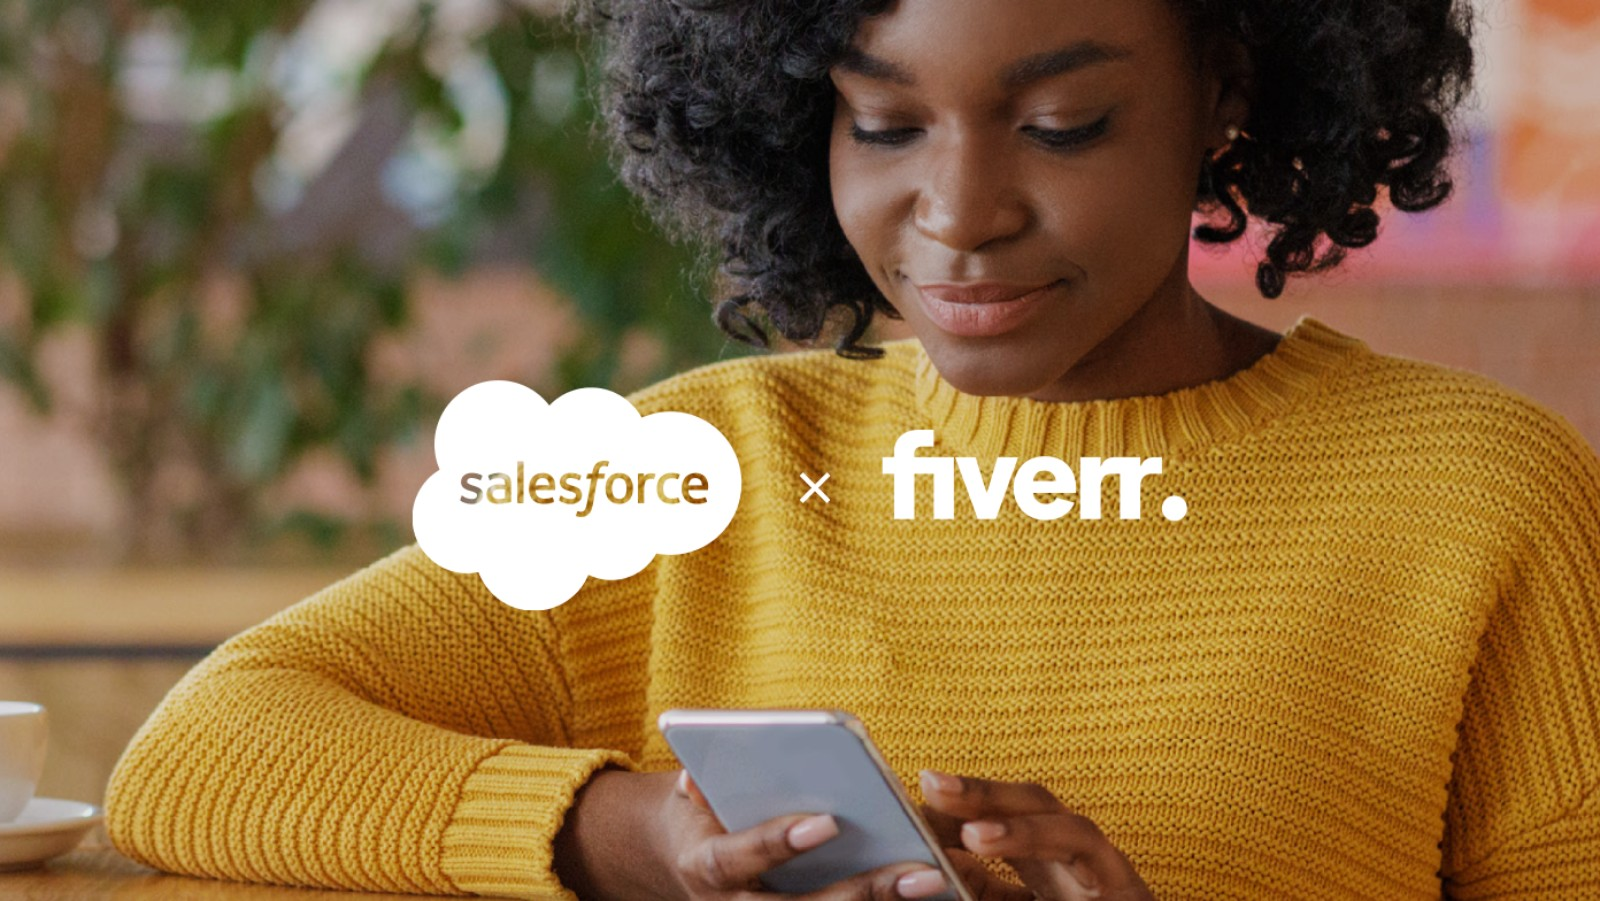 Fiverr aims to help people with disabilities build their professional experience and find freelance employment opportunities through the Fiverr platform. (Courtesy of Fiverr)